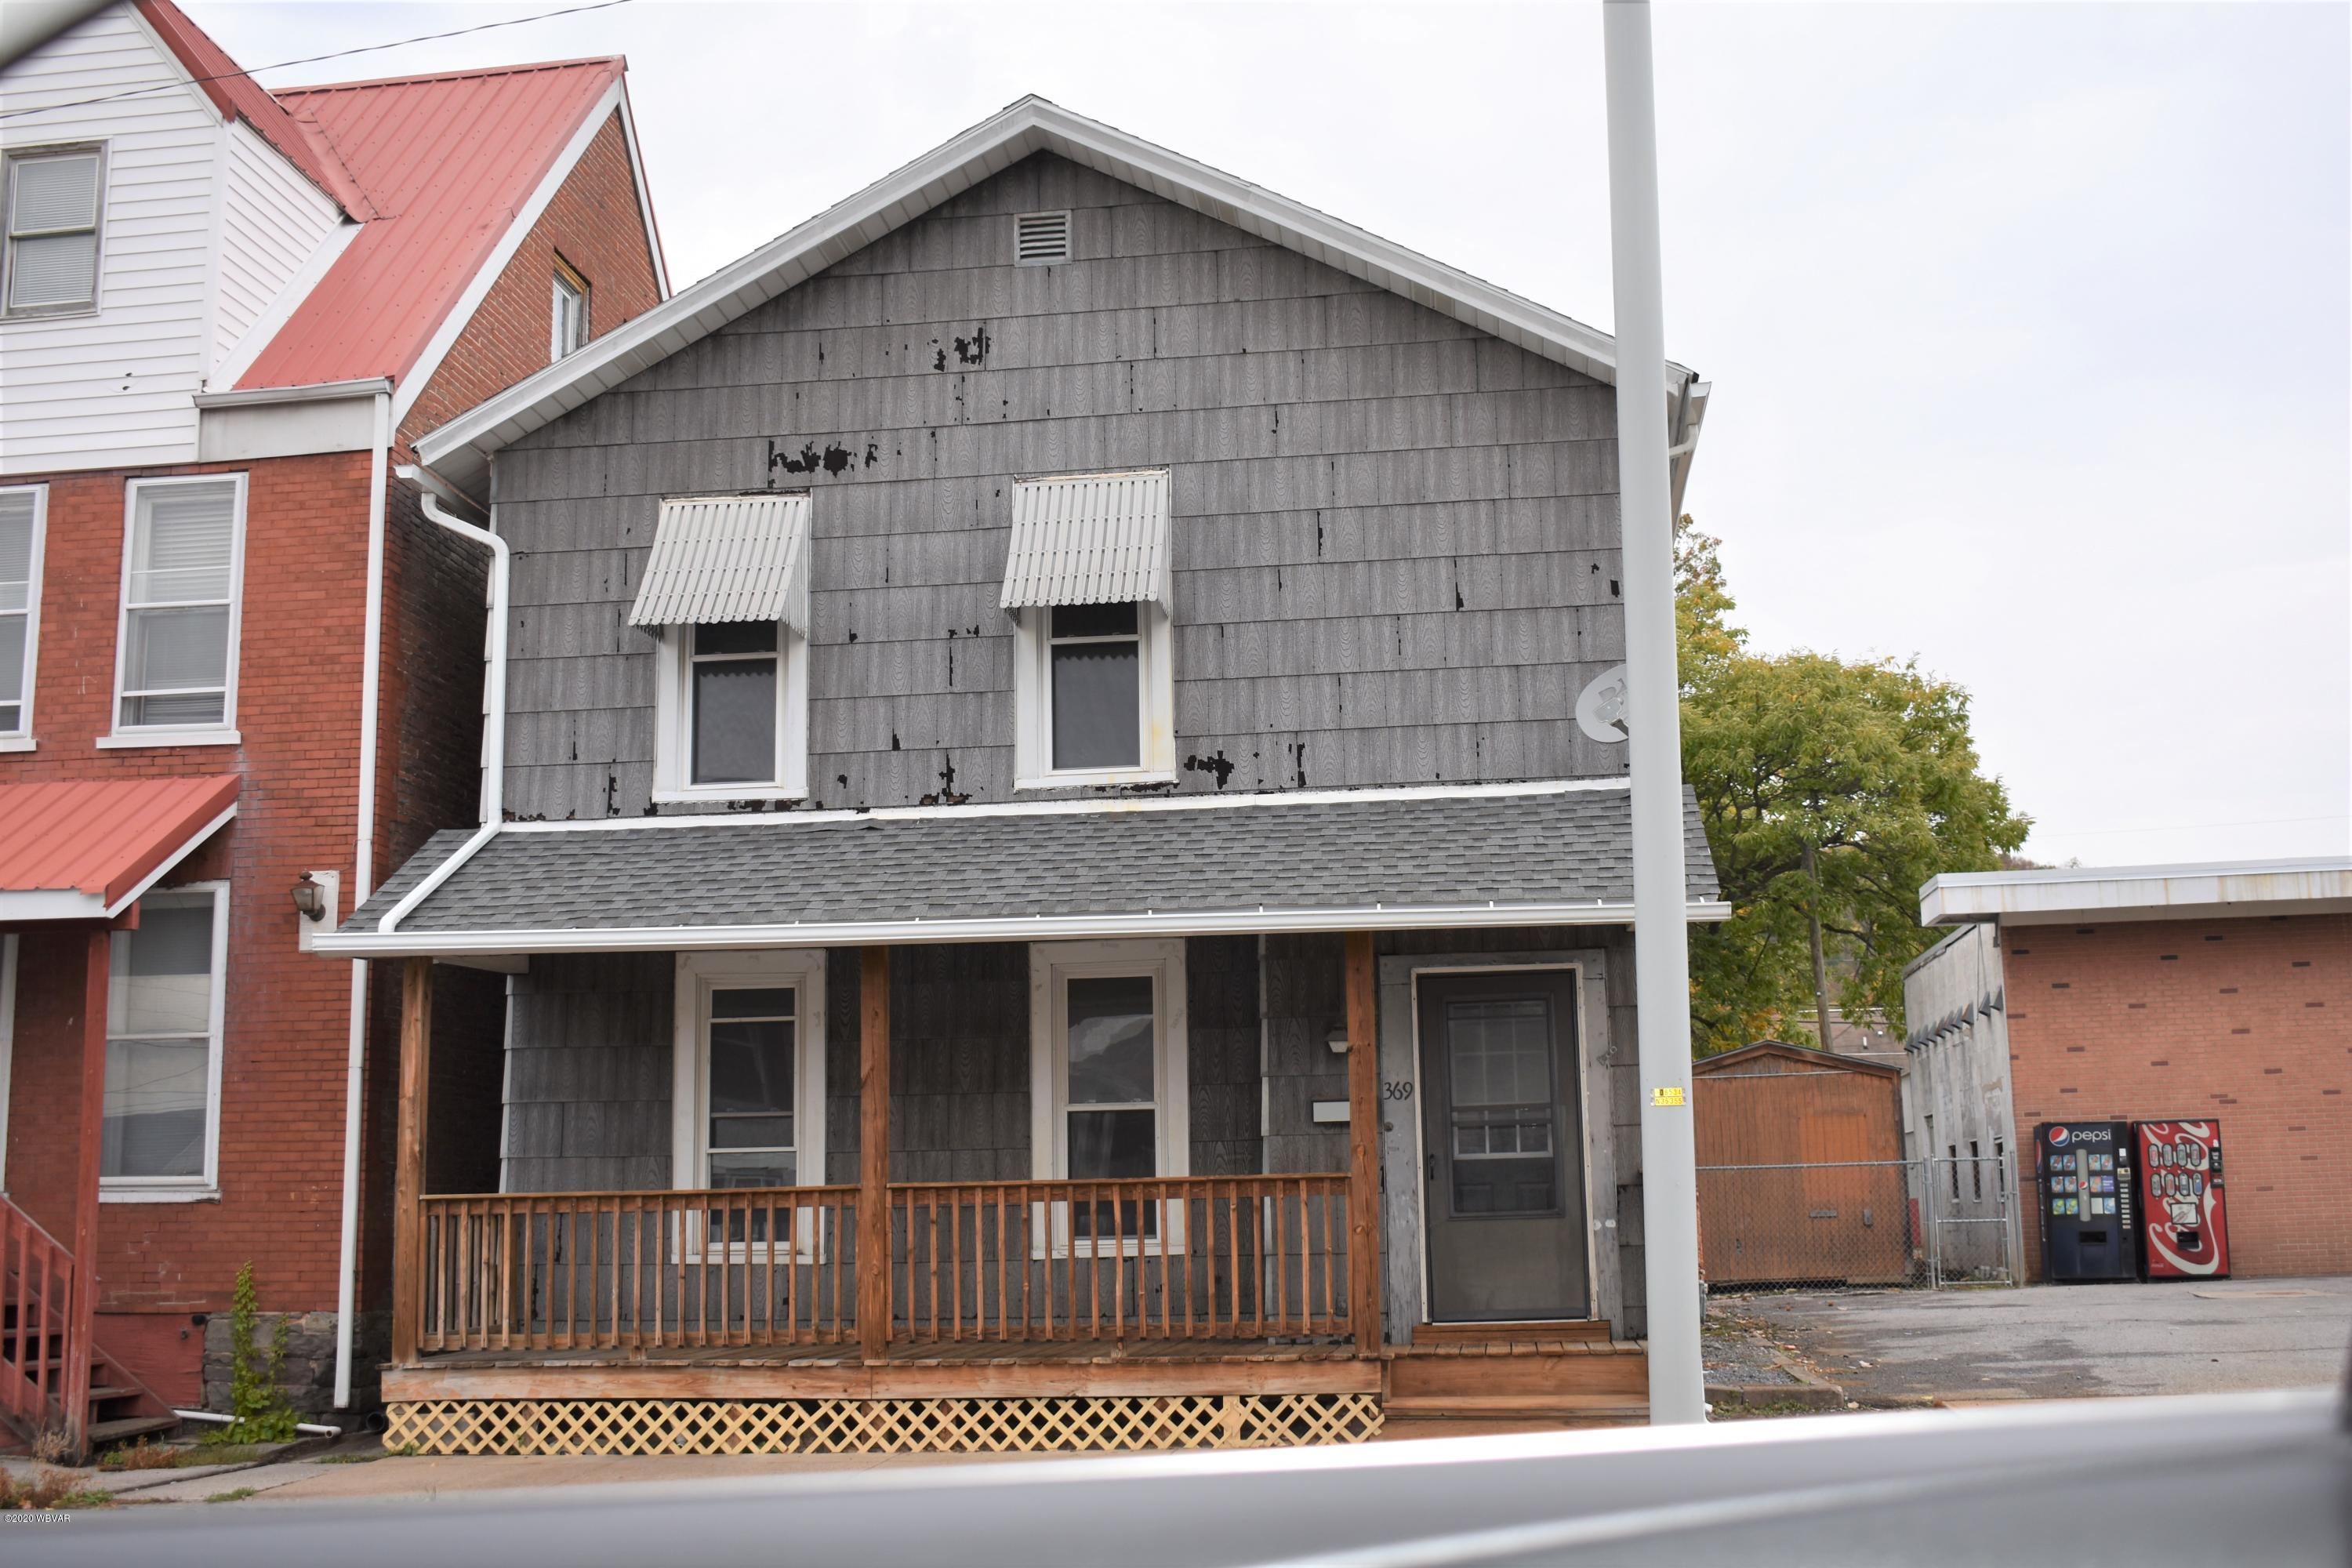 369 MAIN STREET, Lock Haven, PA 17745, 3 Bedrooms Bedrooms, ,2 BathroomsBathrooms,Residential,For sale,MAIN,WB-91413